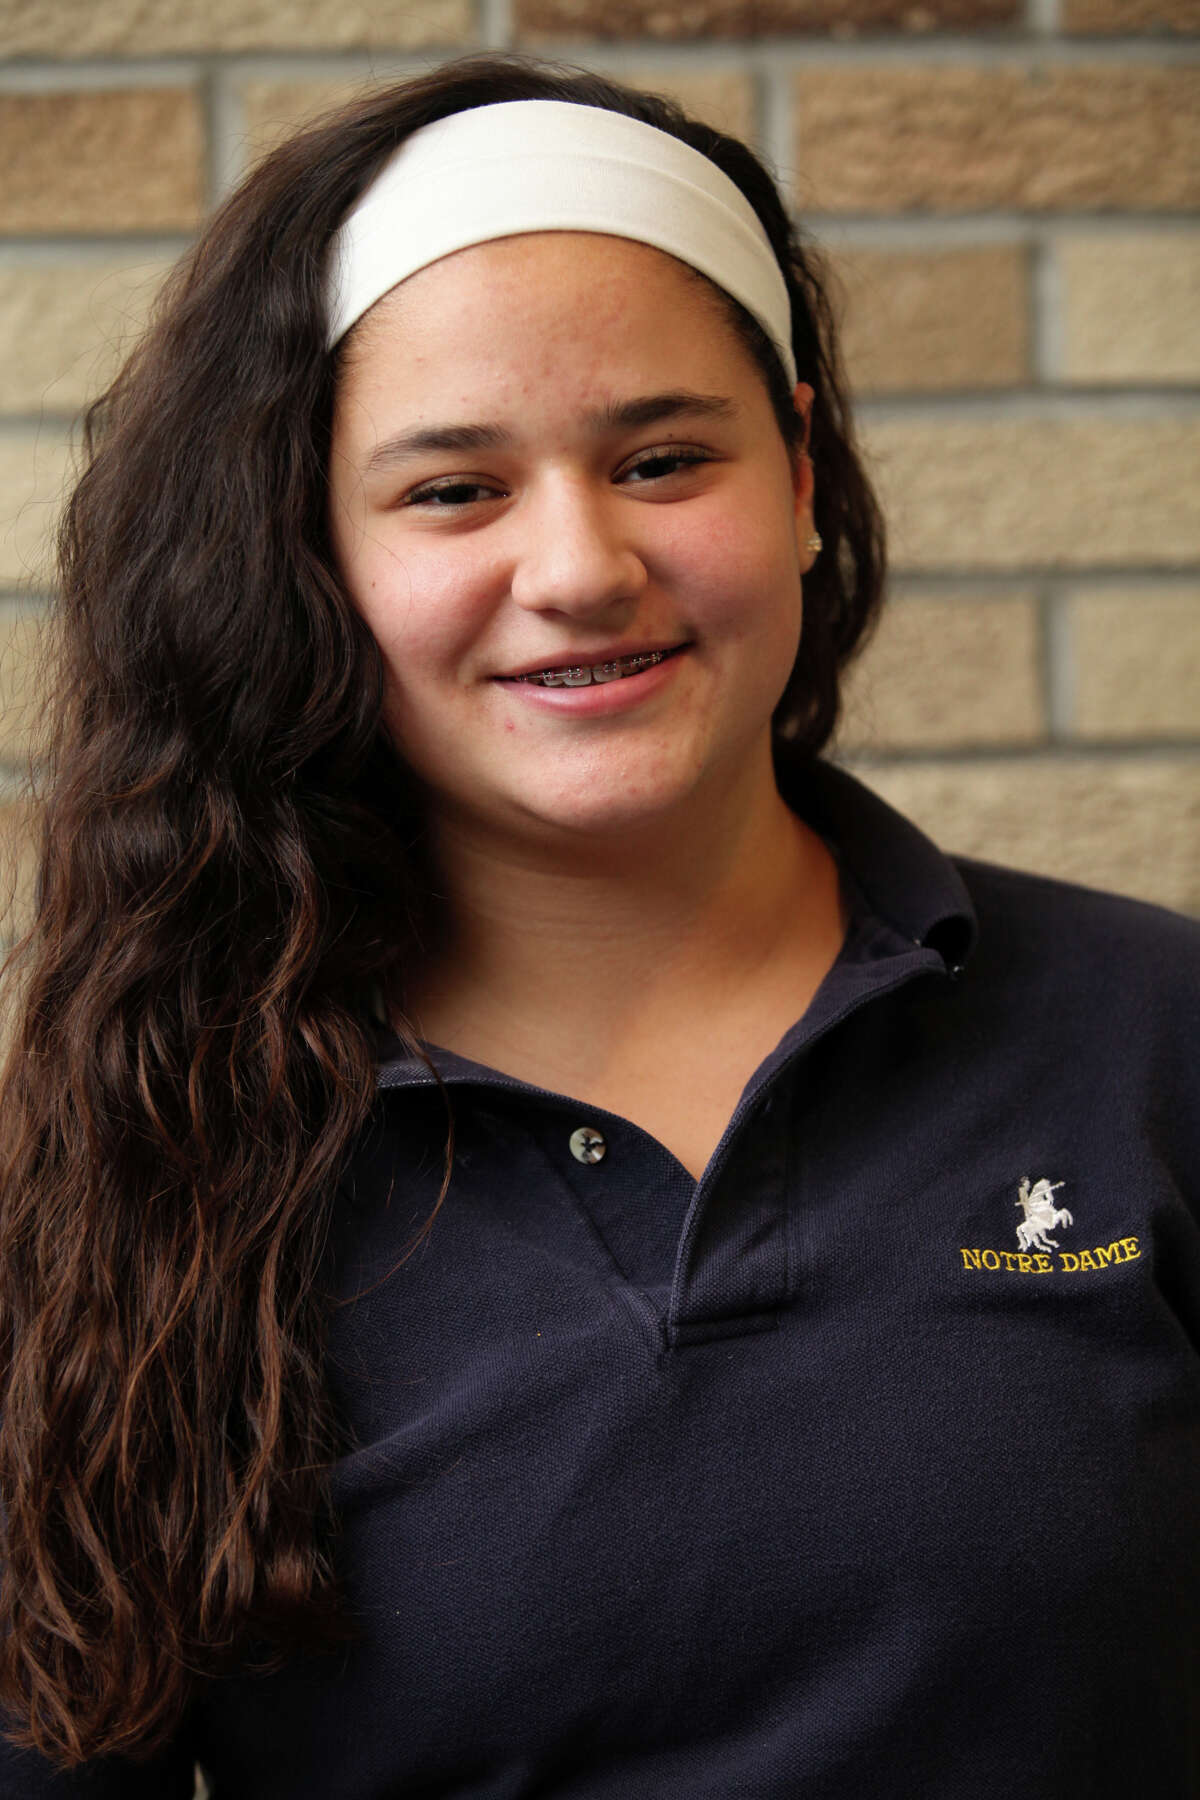 Notre Dame high school, in Fairfield, girls hockey player Becky Stefanatos, is the CT Post Female Athlete of the Week on Monday, December 10, 2012.